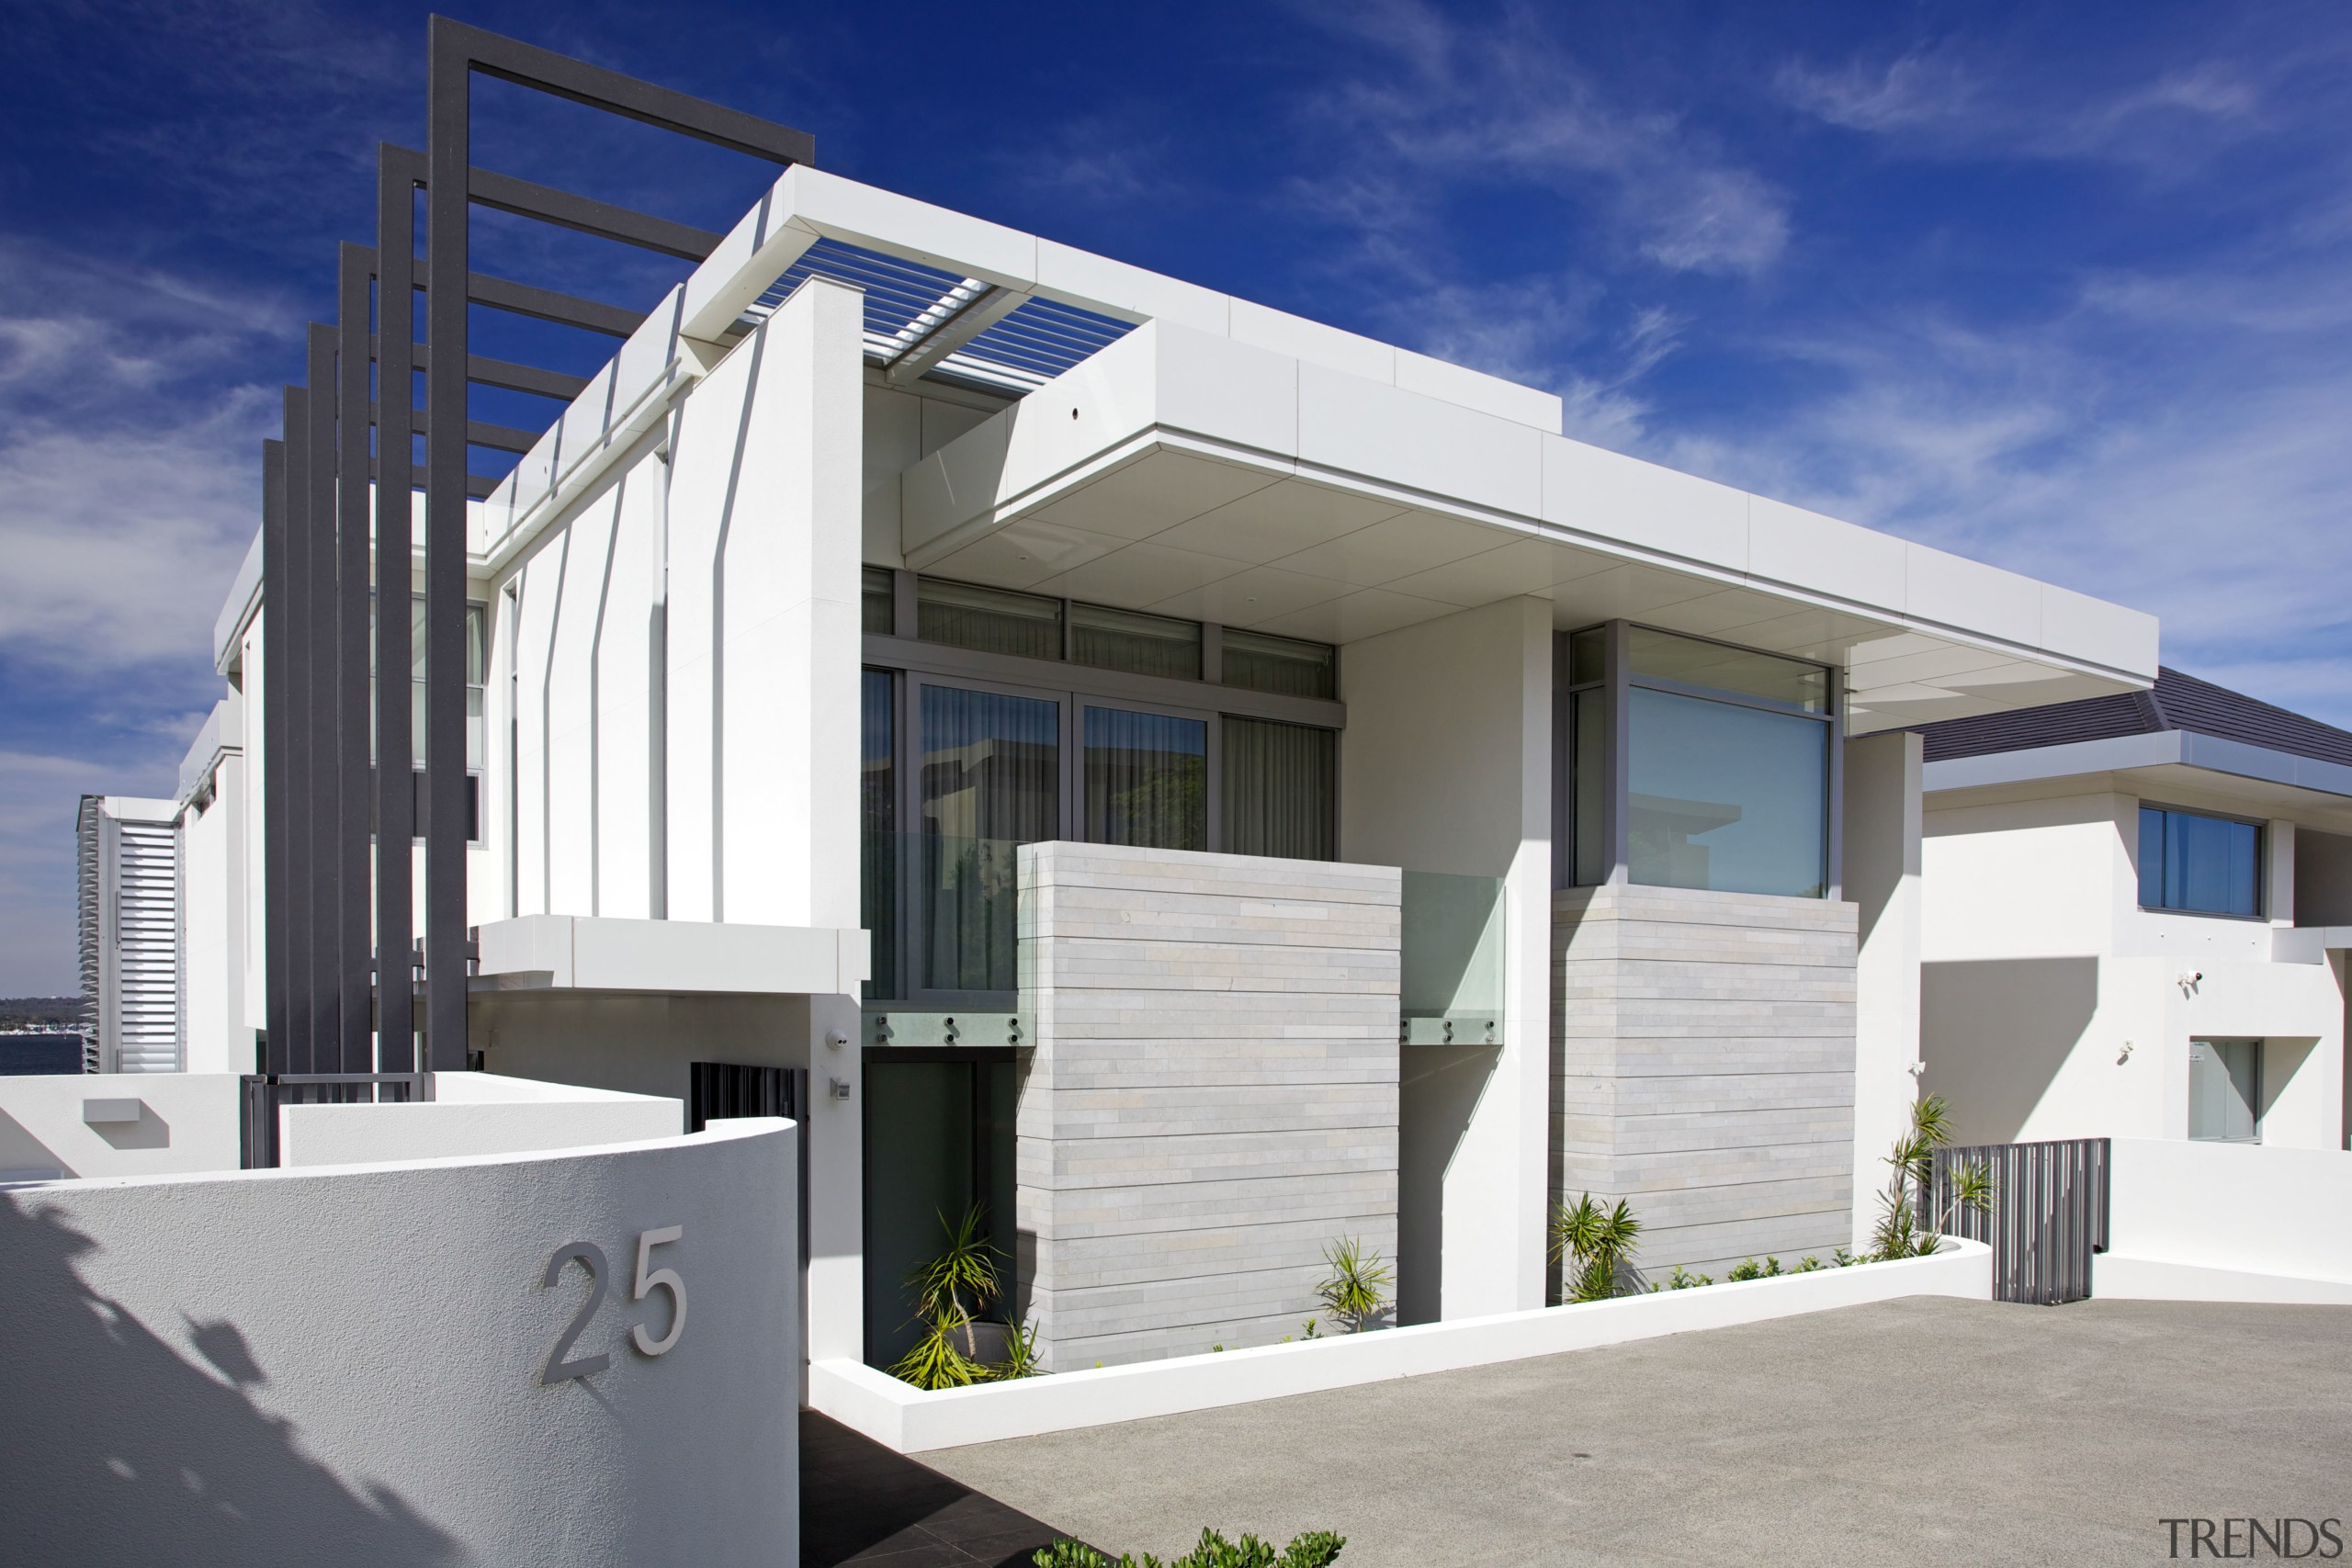 Large ultra modern house on steep site is architecture, building, commercial building, elevation, facade, home, house, property, real estate, residential area, siding, gray, white, blue